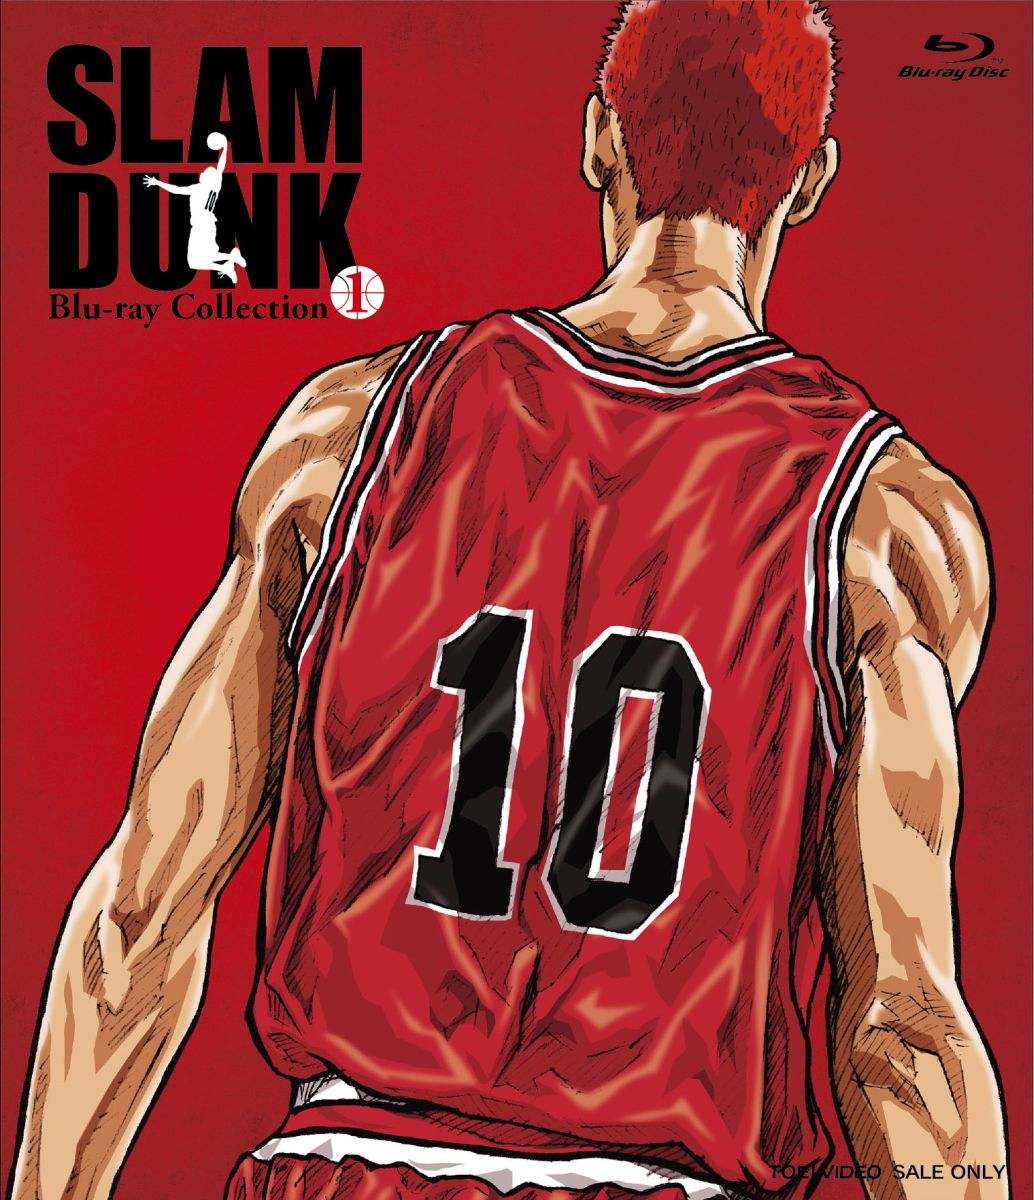 SLAM DUNK Blu-ray Collection 1【Blu-ray】画像